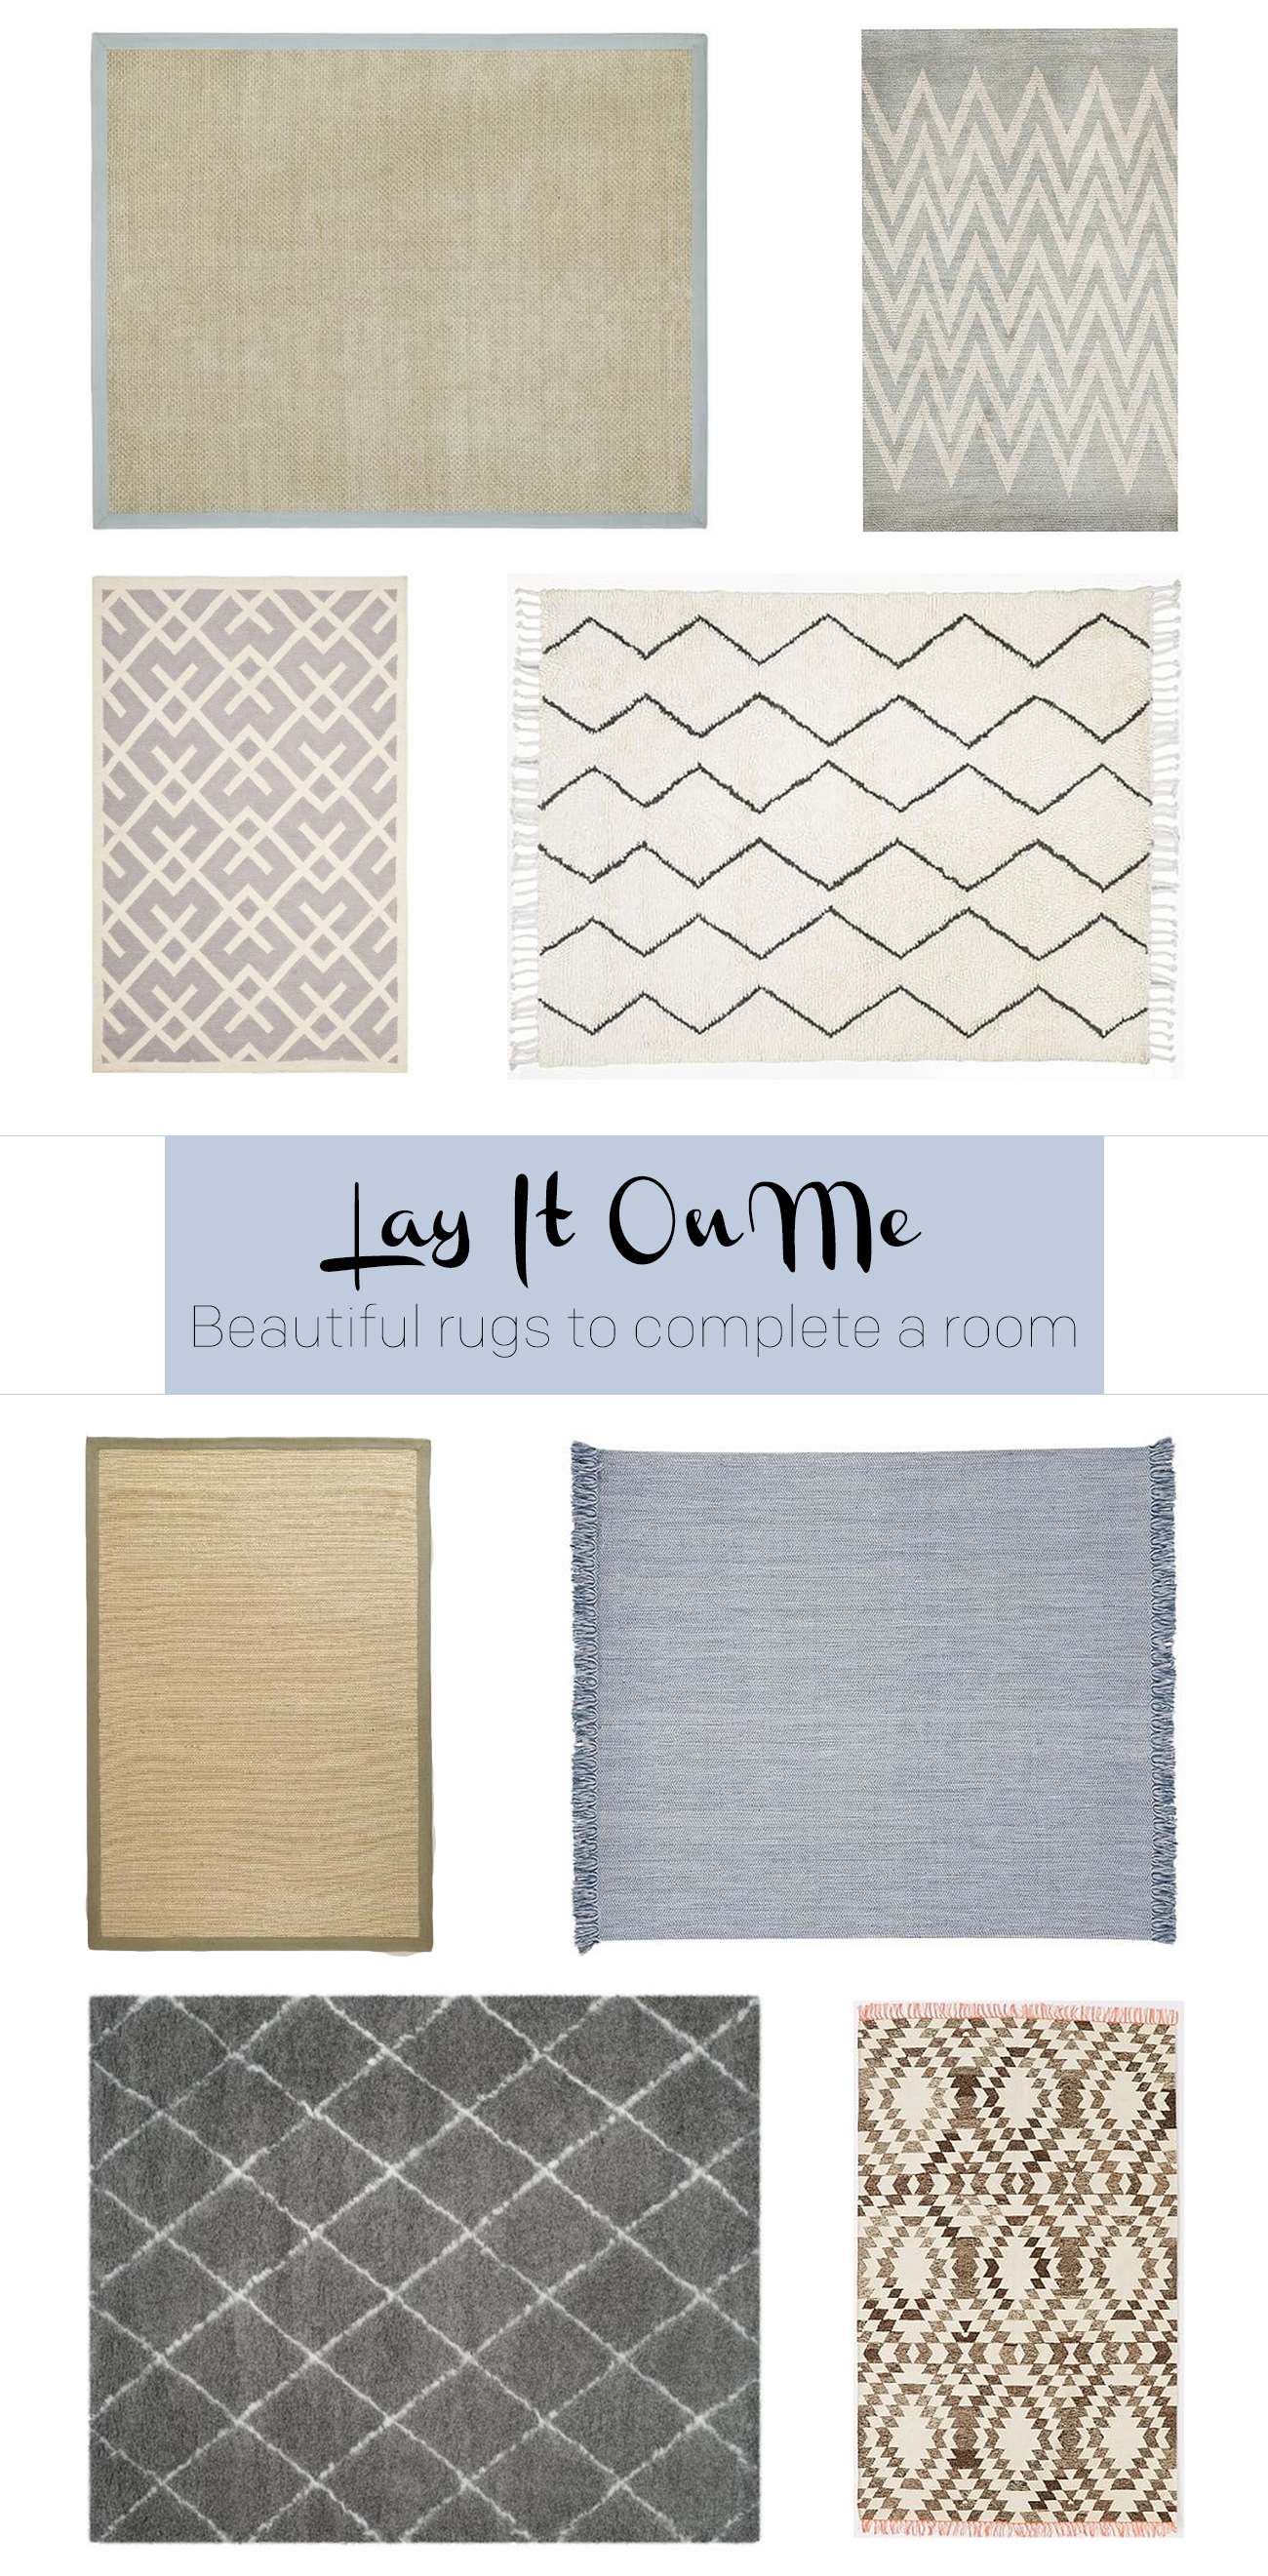 Best rugs for a living room, Isn't That charming